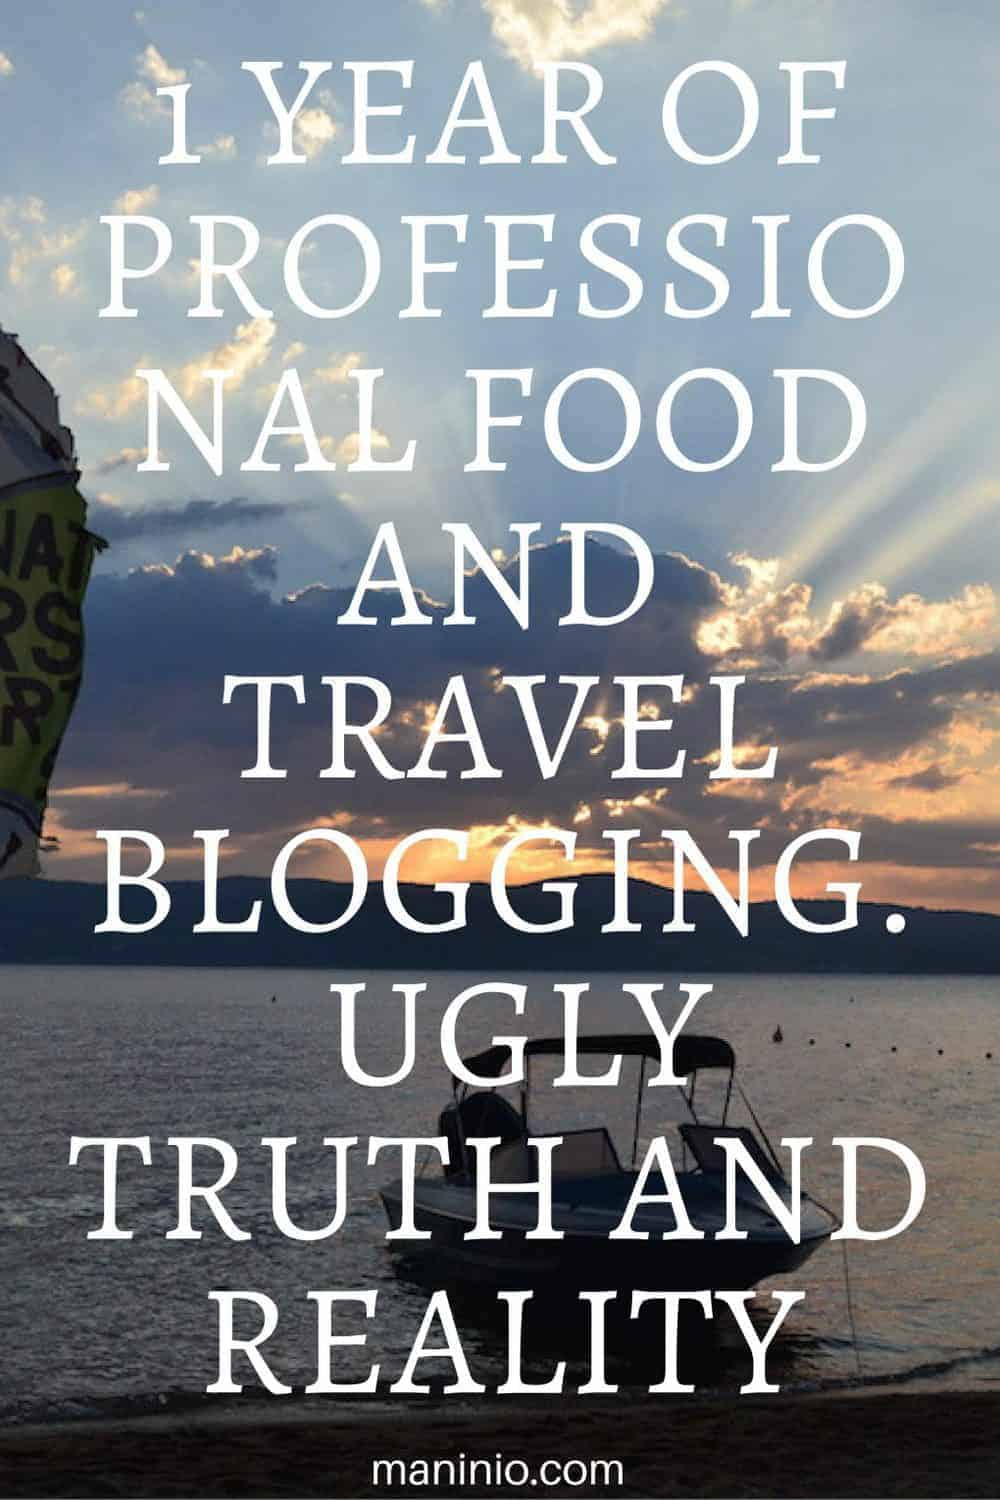 1 year of Professional Food and Travel Blogging | Ugly Truth and Reality. maninio.com #travelblogger #veganblogger